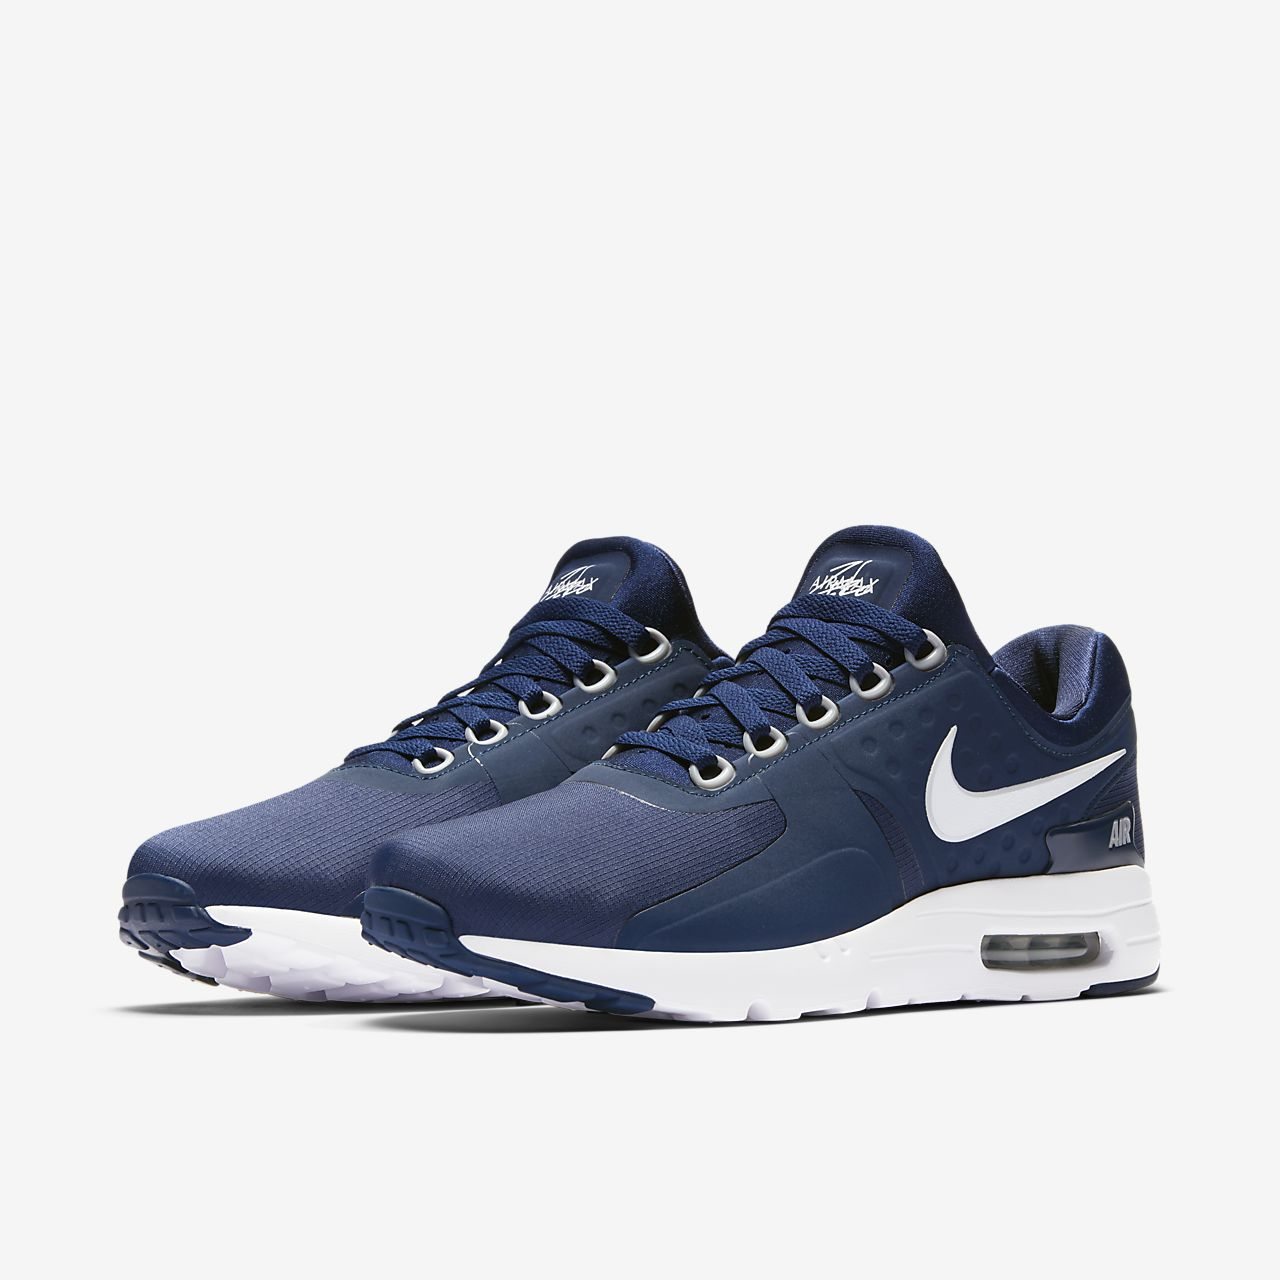 huge selection of 24d84 88b28 ... Scarpa Nike Air Max Zero Essential - Uomo